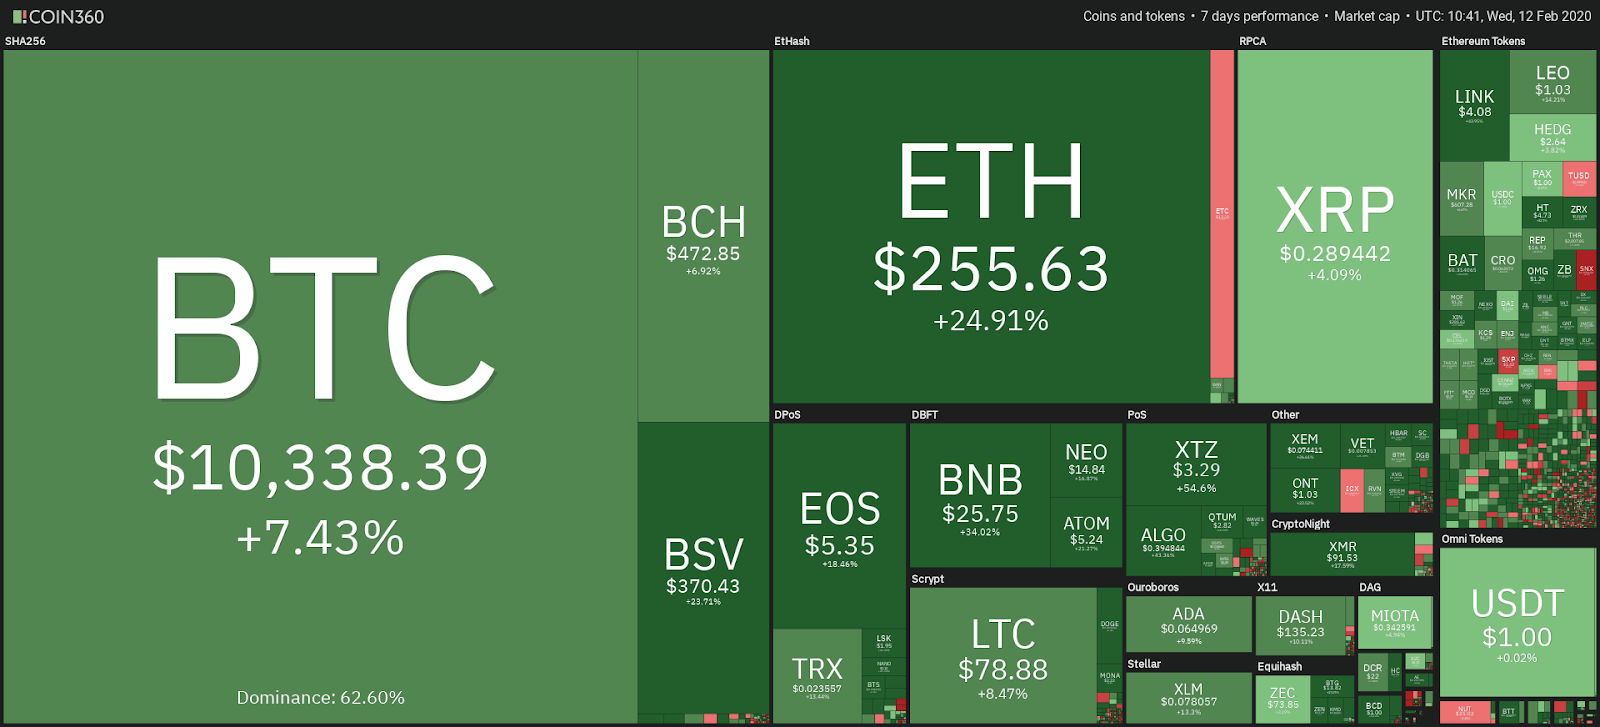 Cryptocurrency market performance, past 7 days